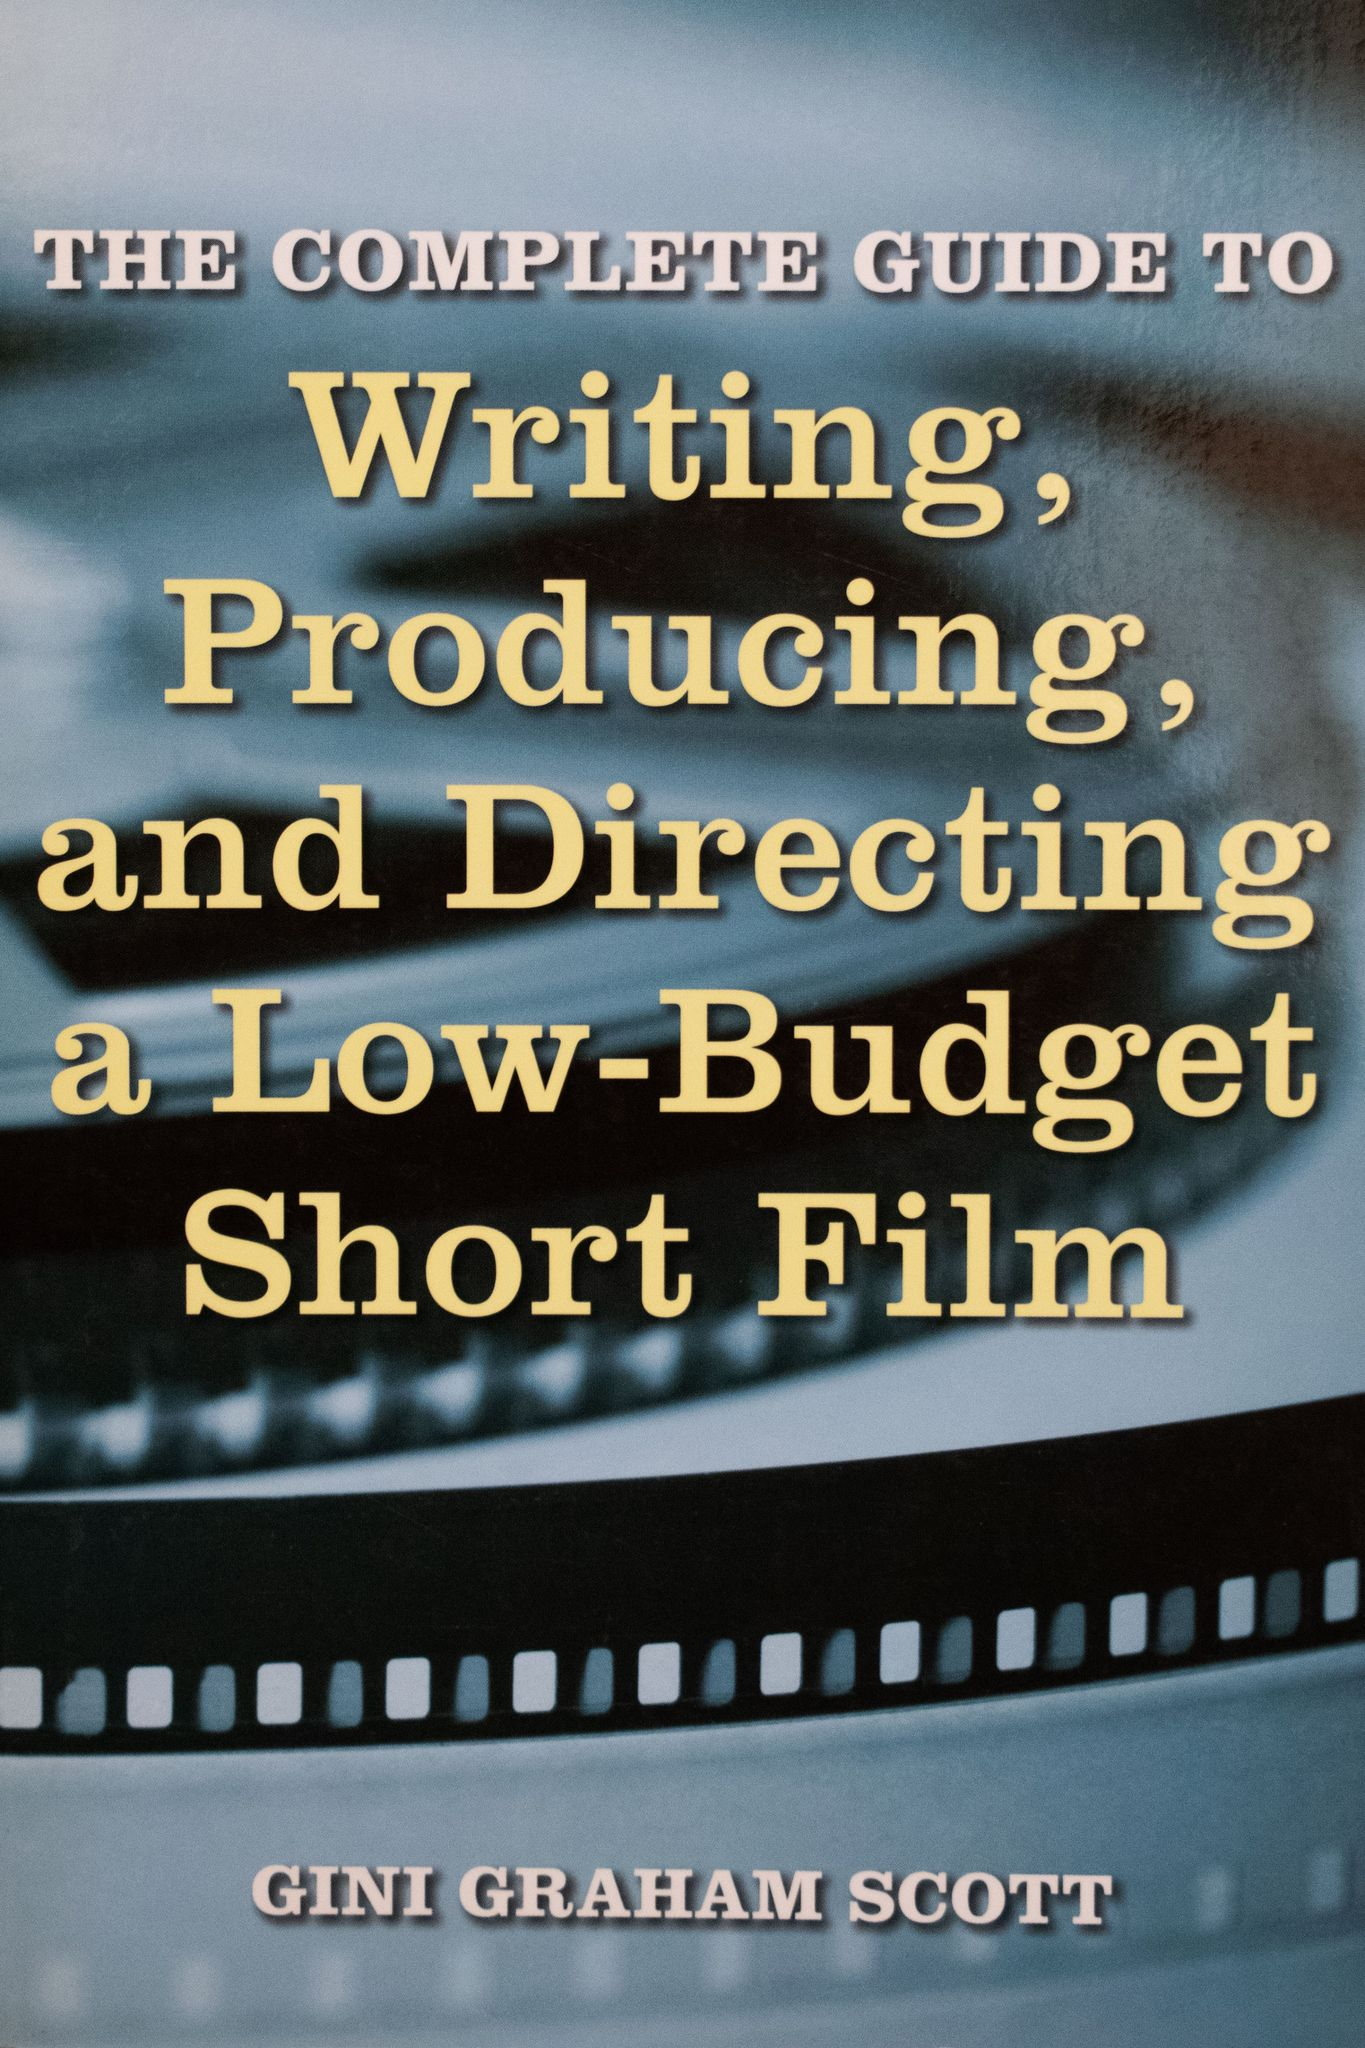 Writing, Producing and Directing a Low-Budget Short Film